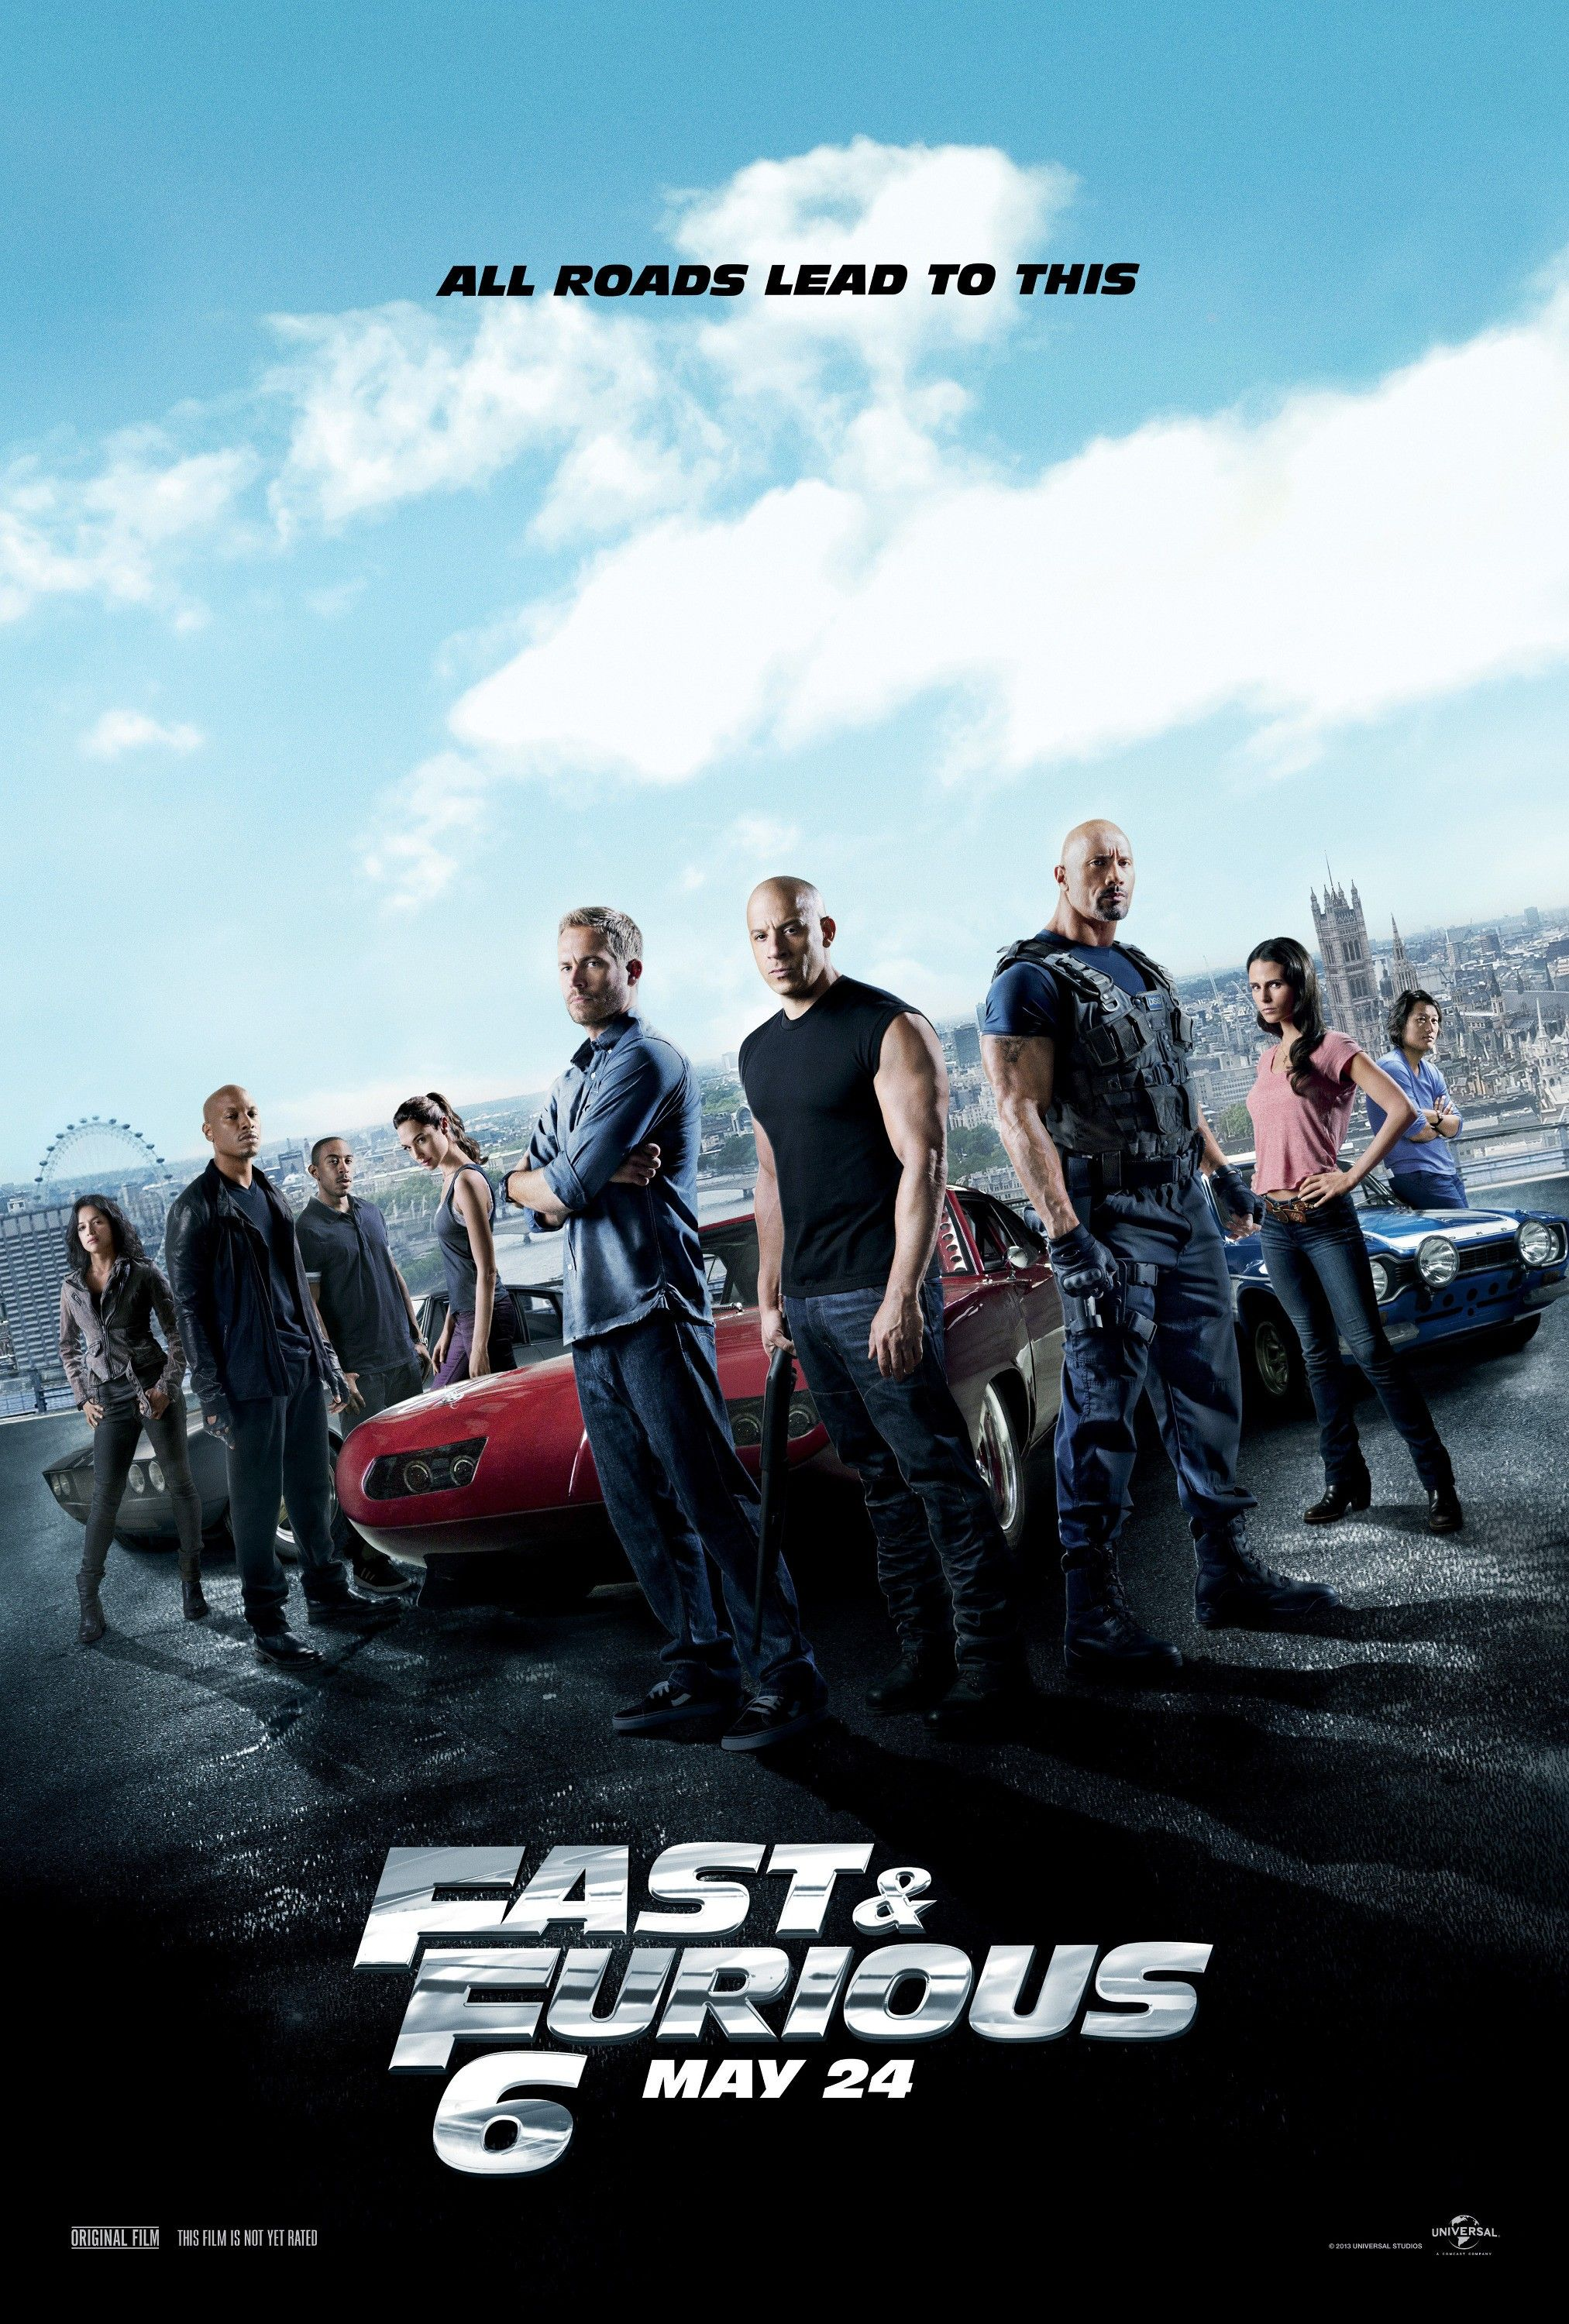 0d4f7283882fdf884c858206ecb450d3 Interesting Info About Furious 7 Watch Free